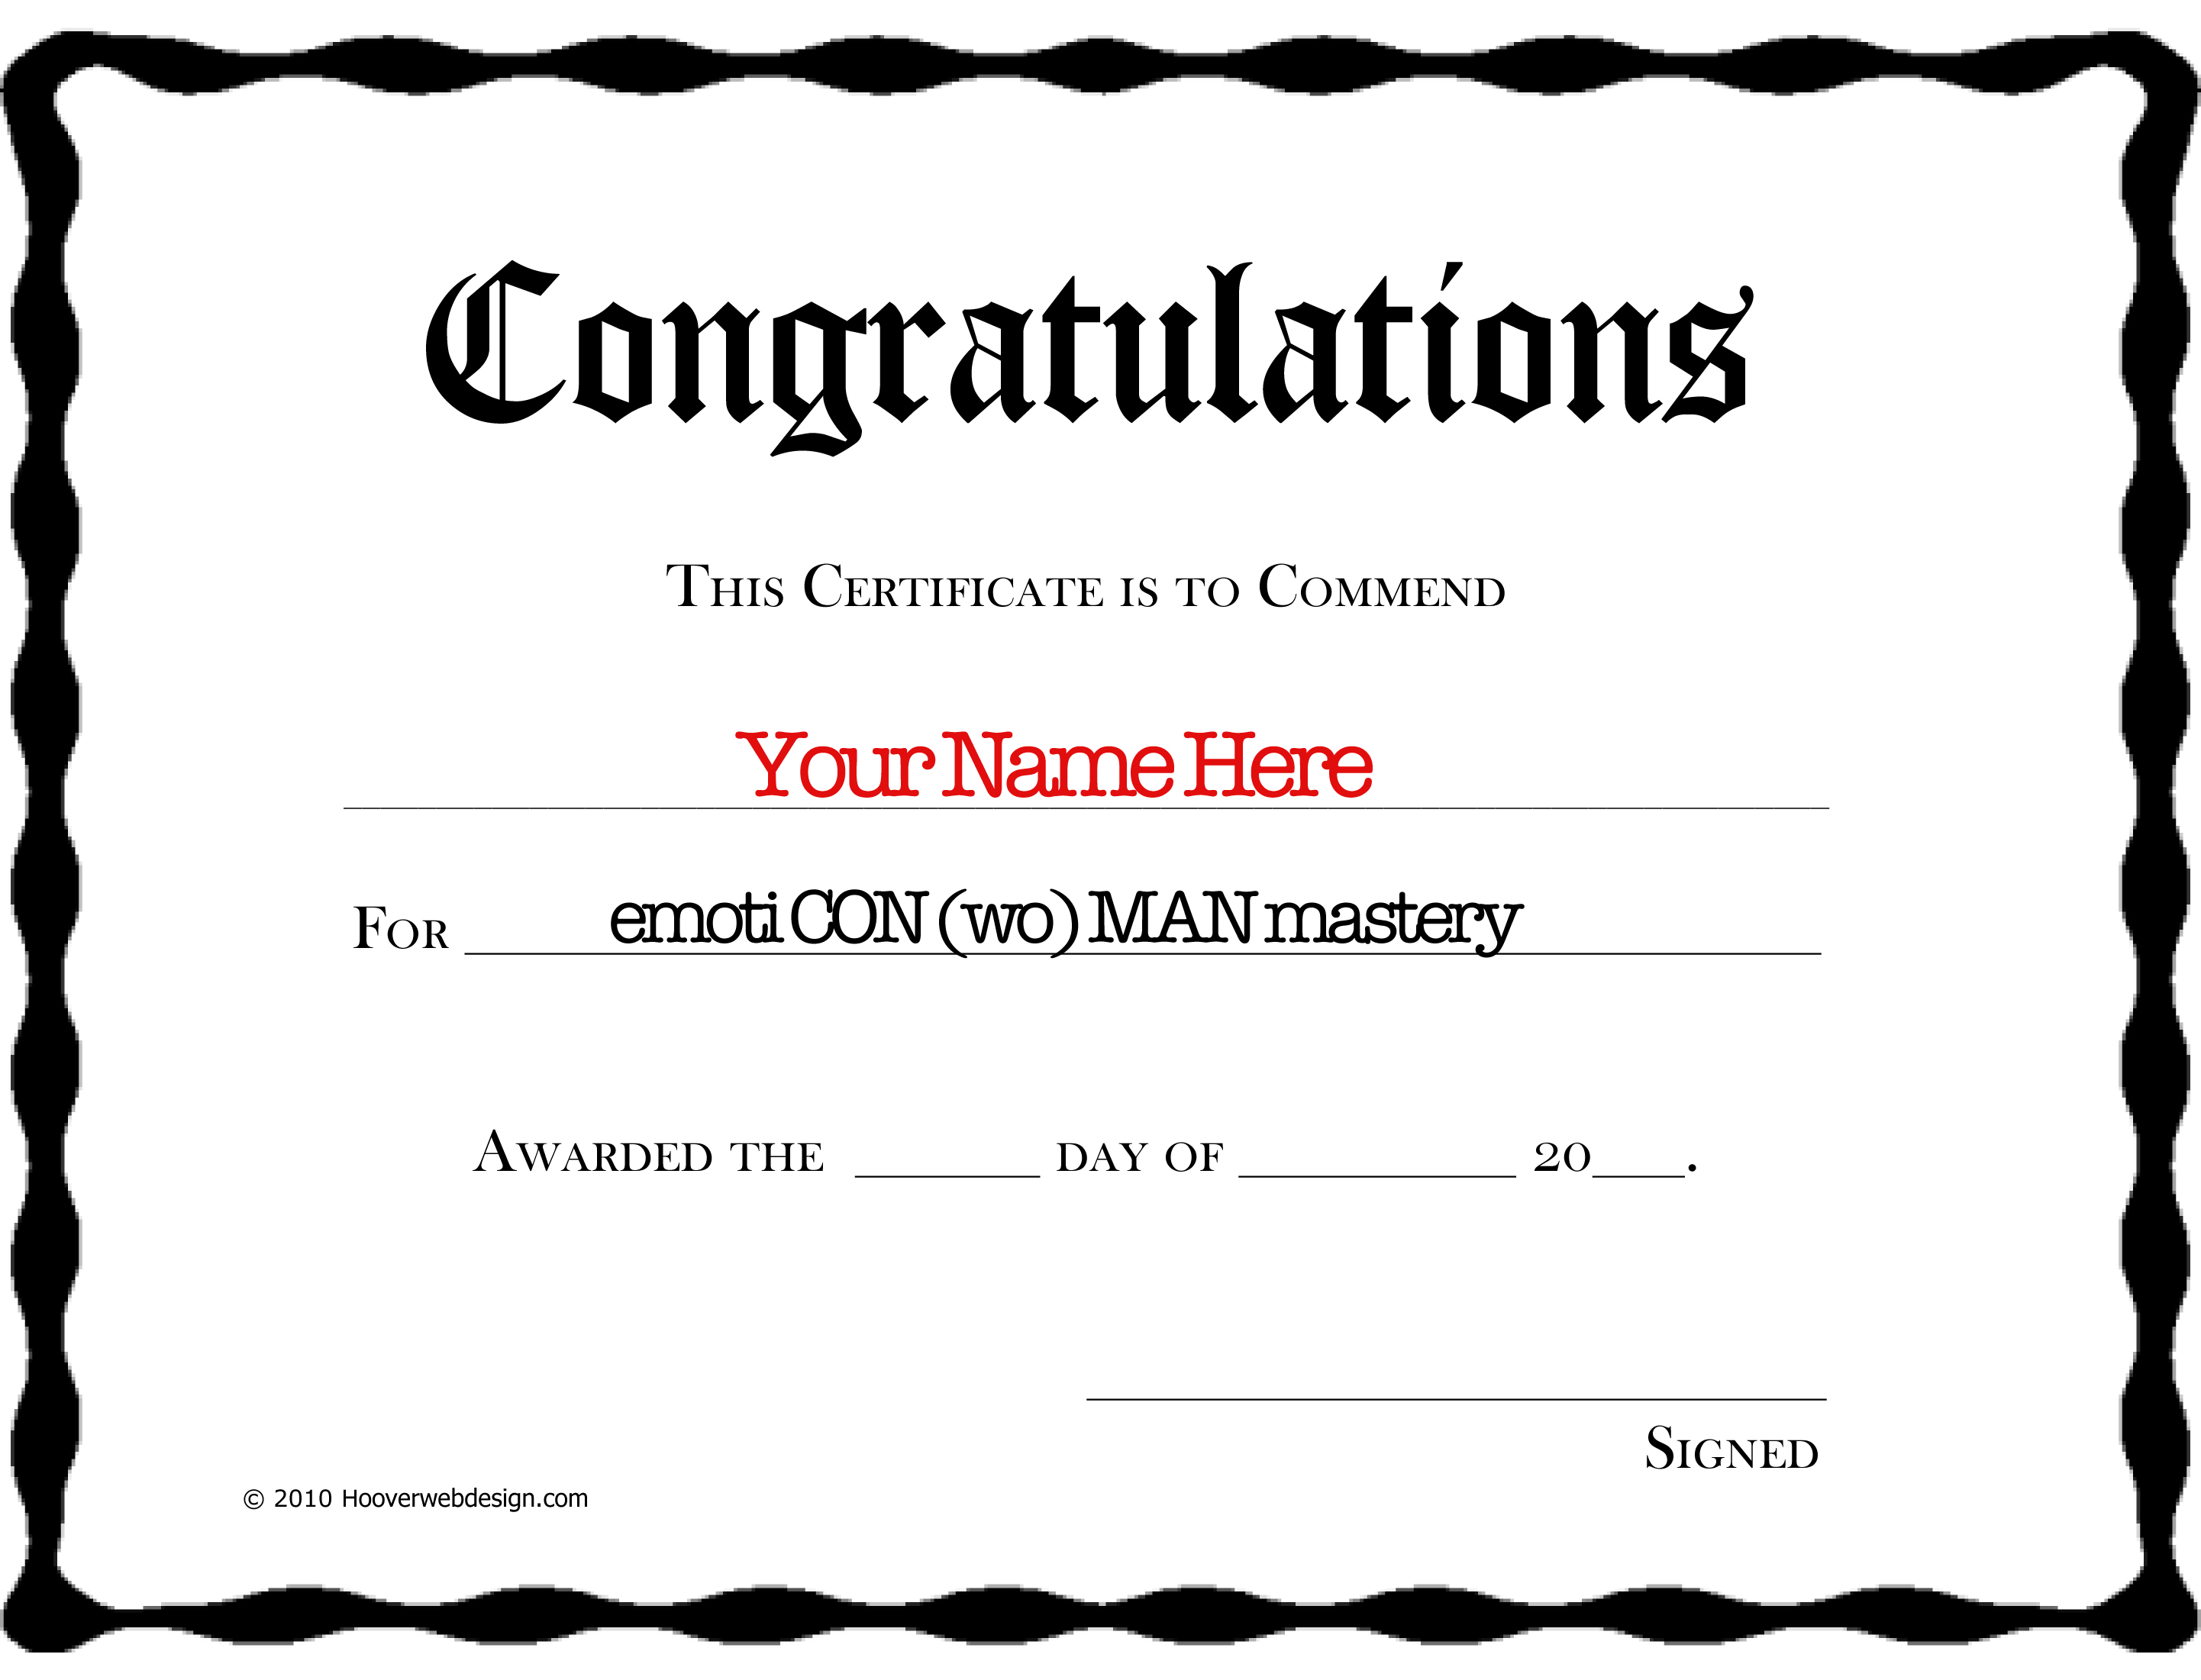 You Did It Printable Awards Pictures to Pin PinsDaddy – Congratulations Certificate